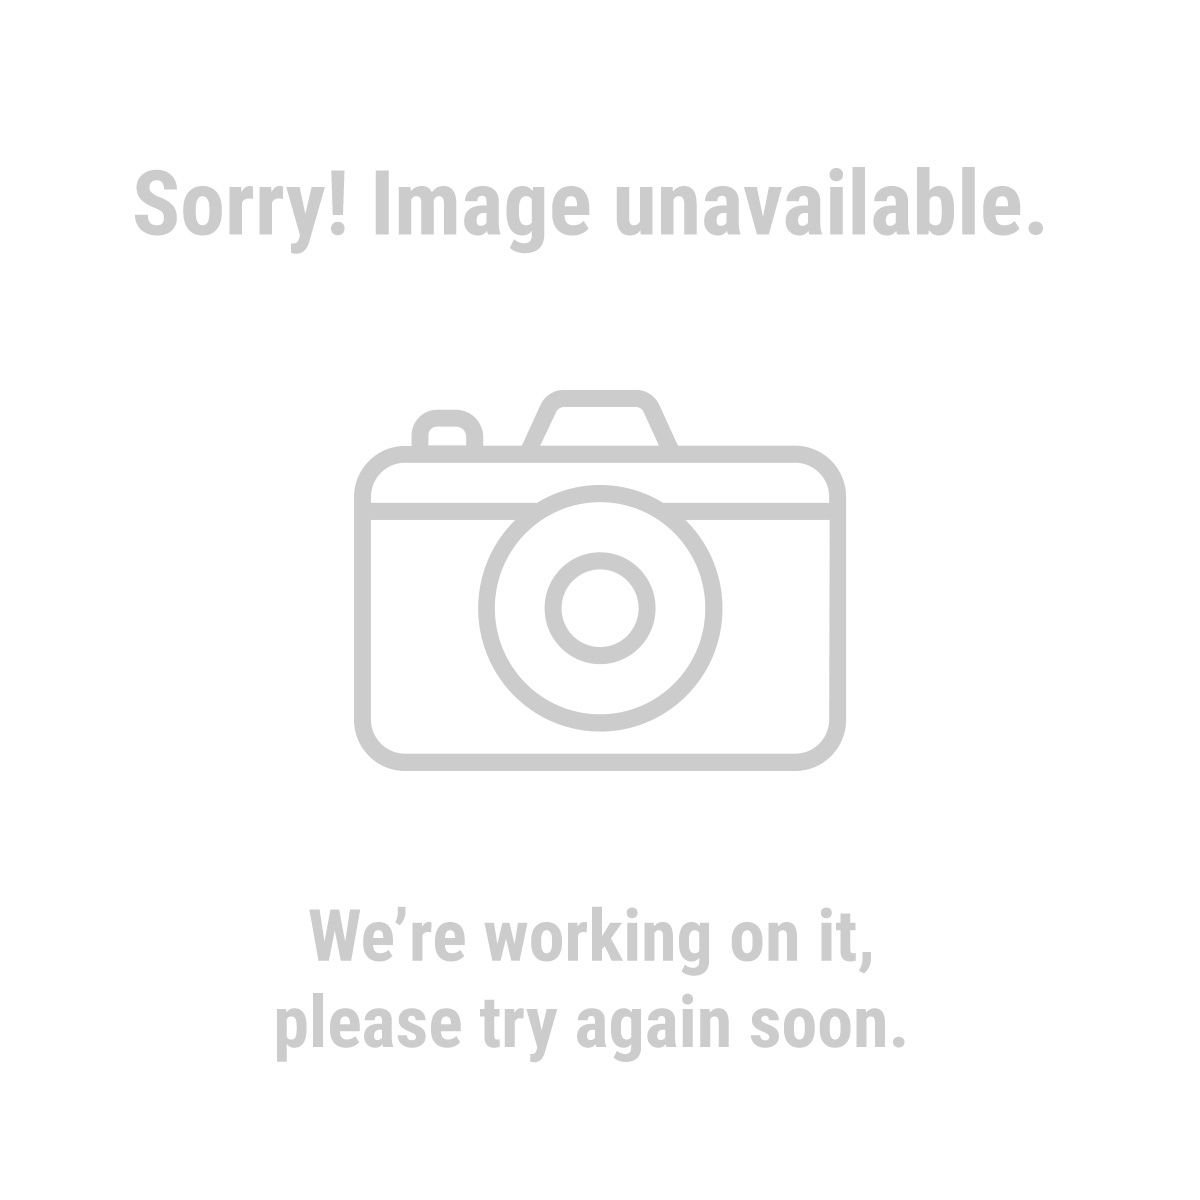 Voyager® 96533 Magnetic Wrist Band